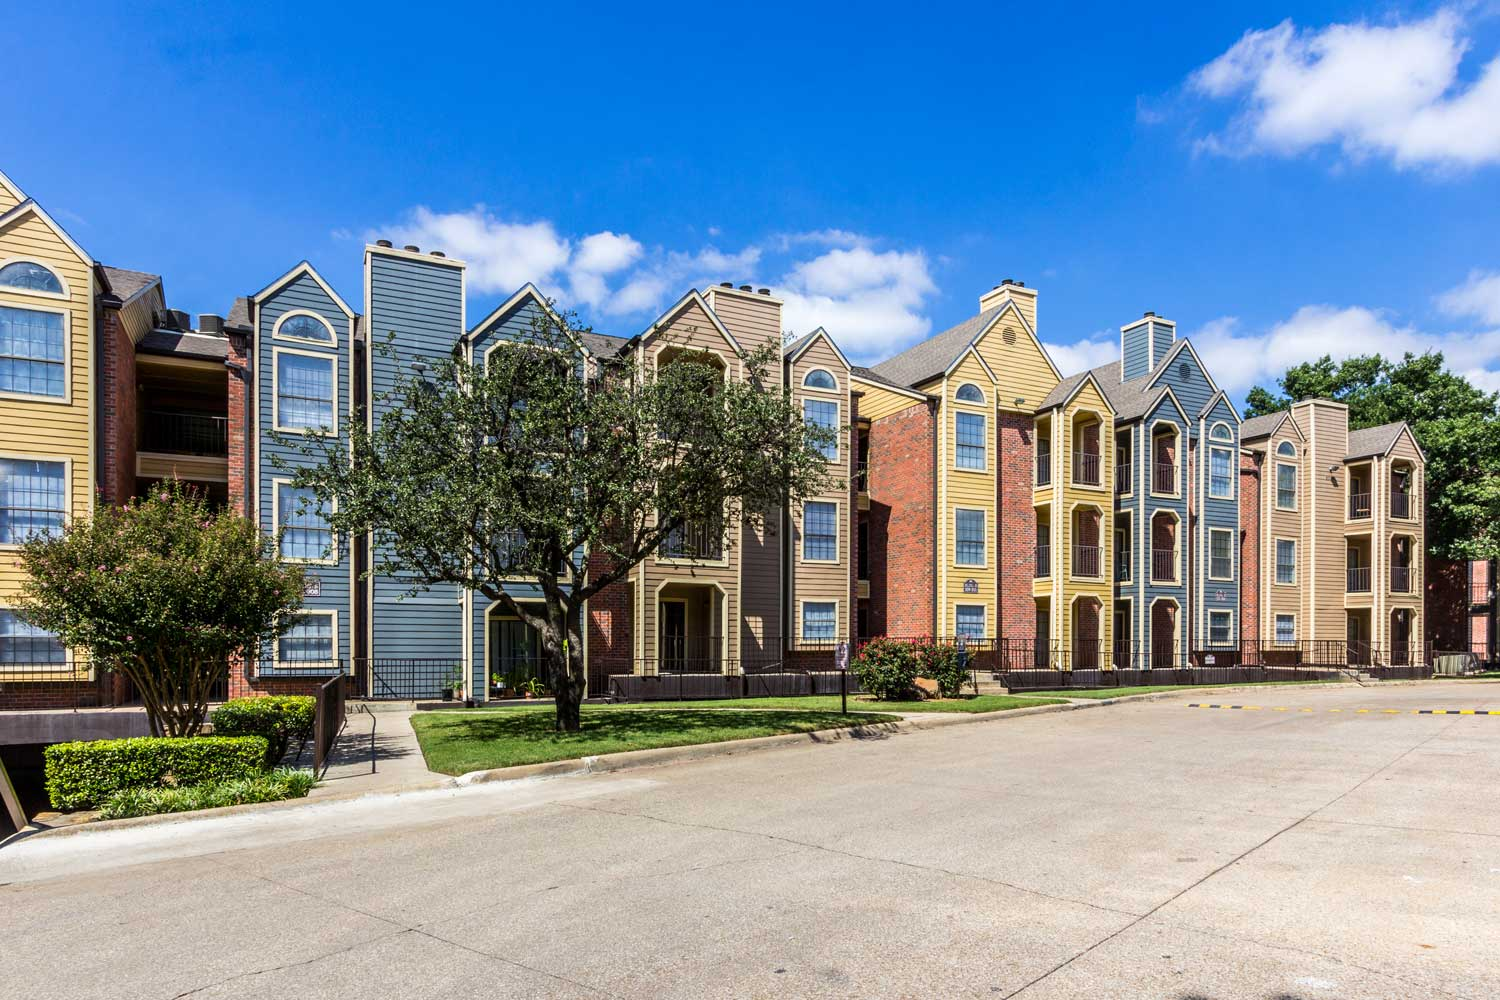 Townhouse-Style Apartments for Rent at Forest Hills Apartments in Dallas, TX